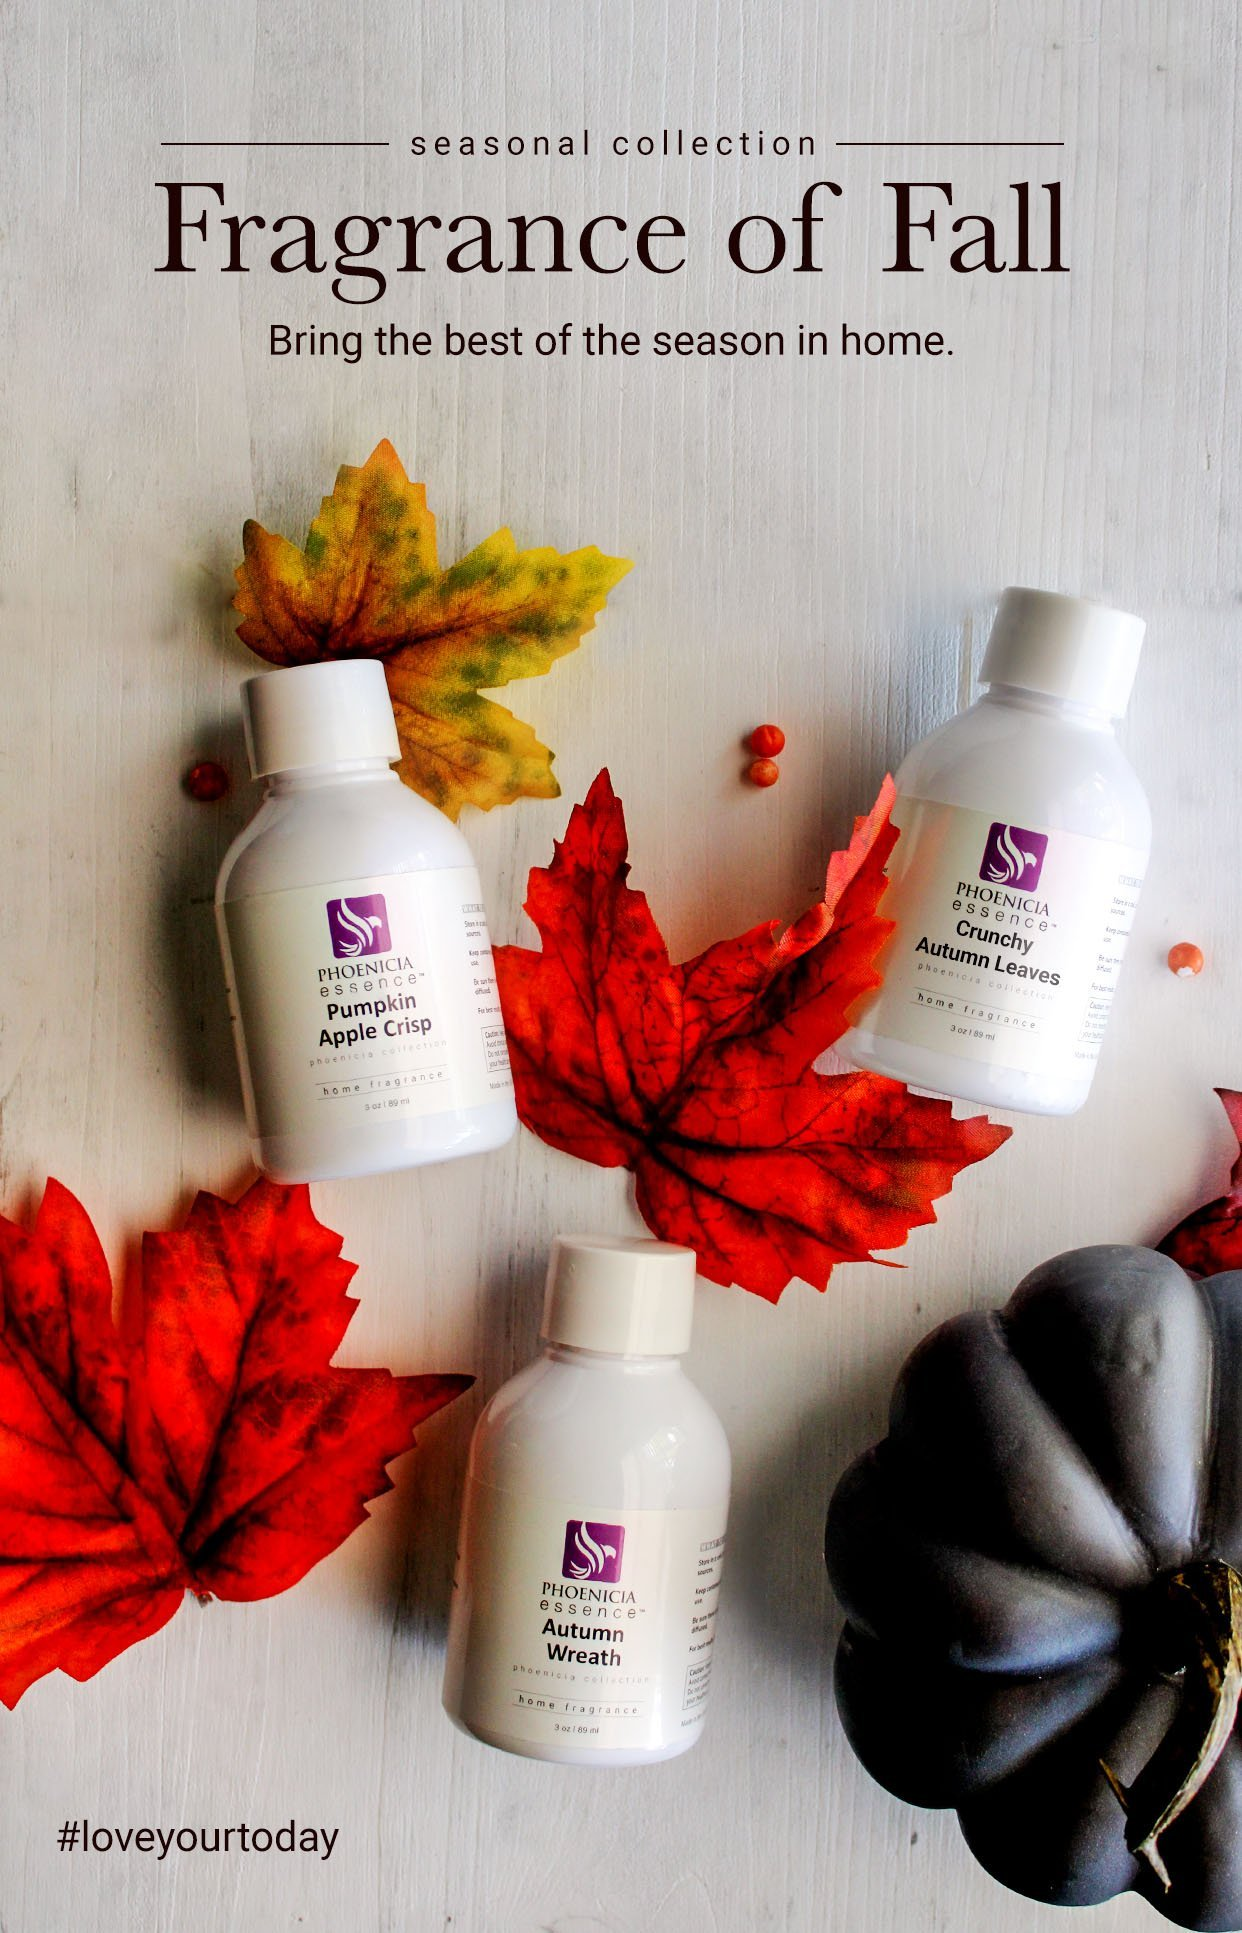 Fall Fragrance Collection Image